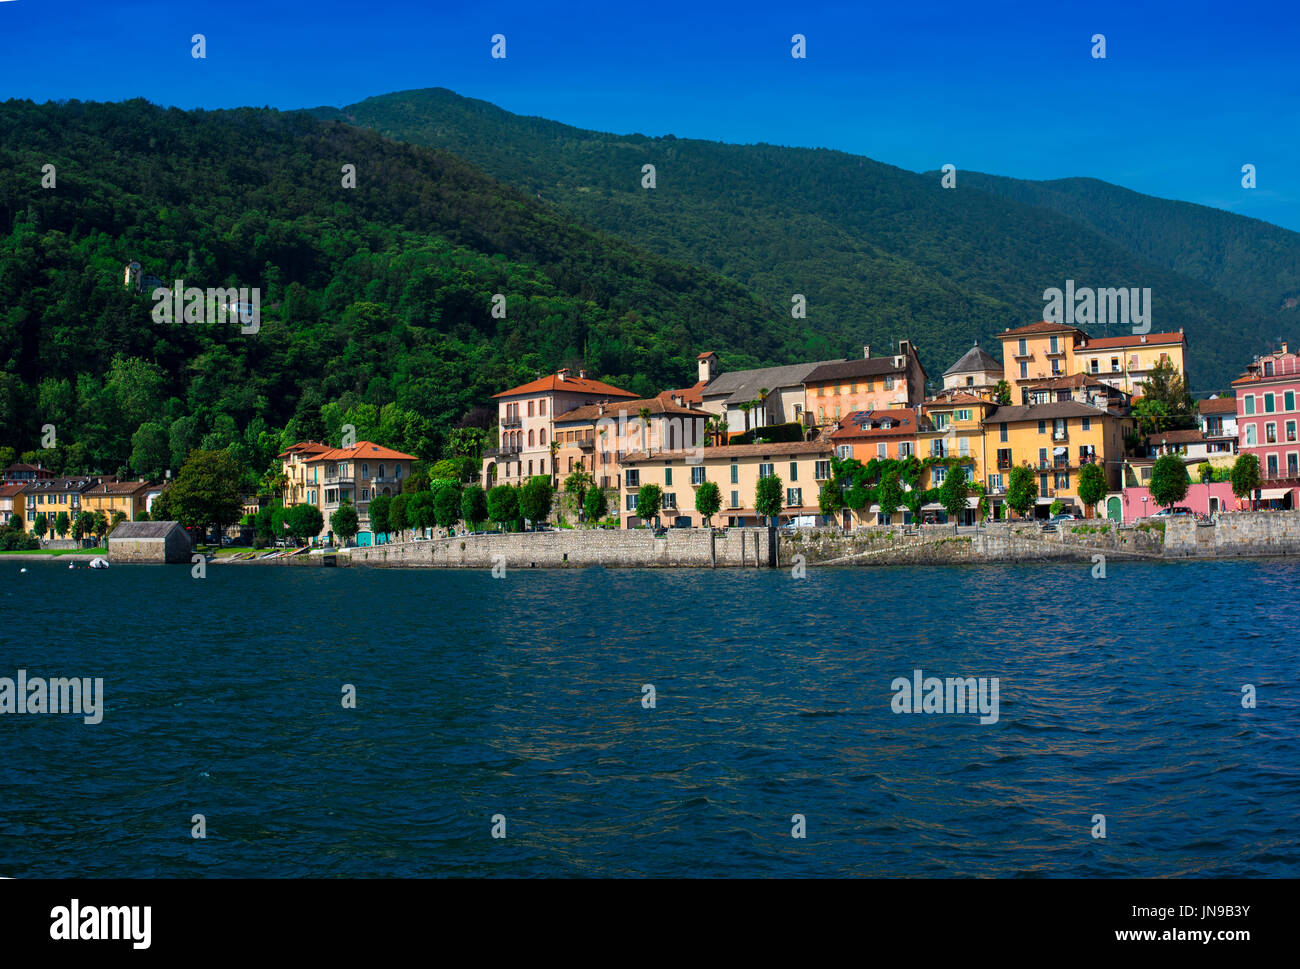 lago maggiore cannobio piemont italy stock photos lago. Black Bedroom Furniture Sets. Home Design Ideas